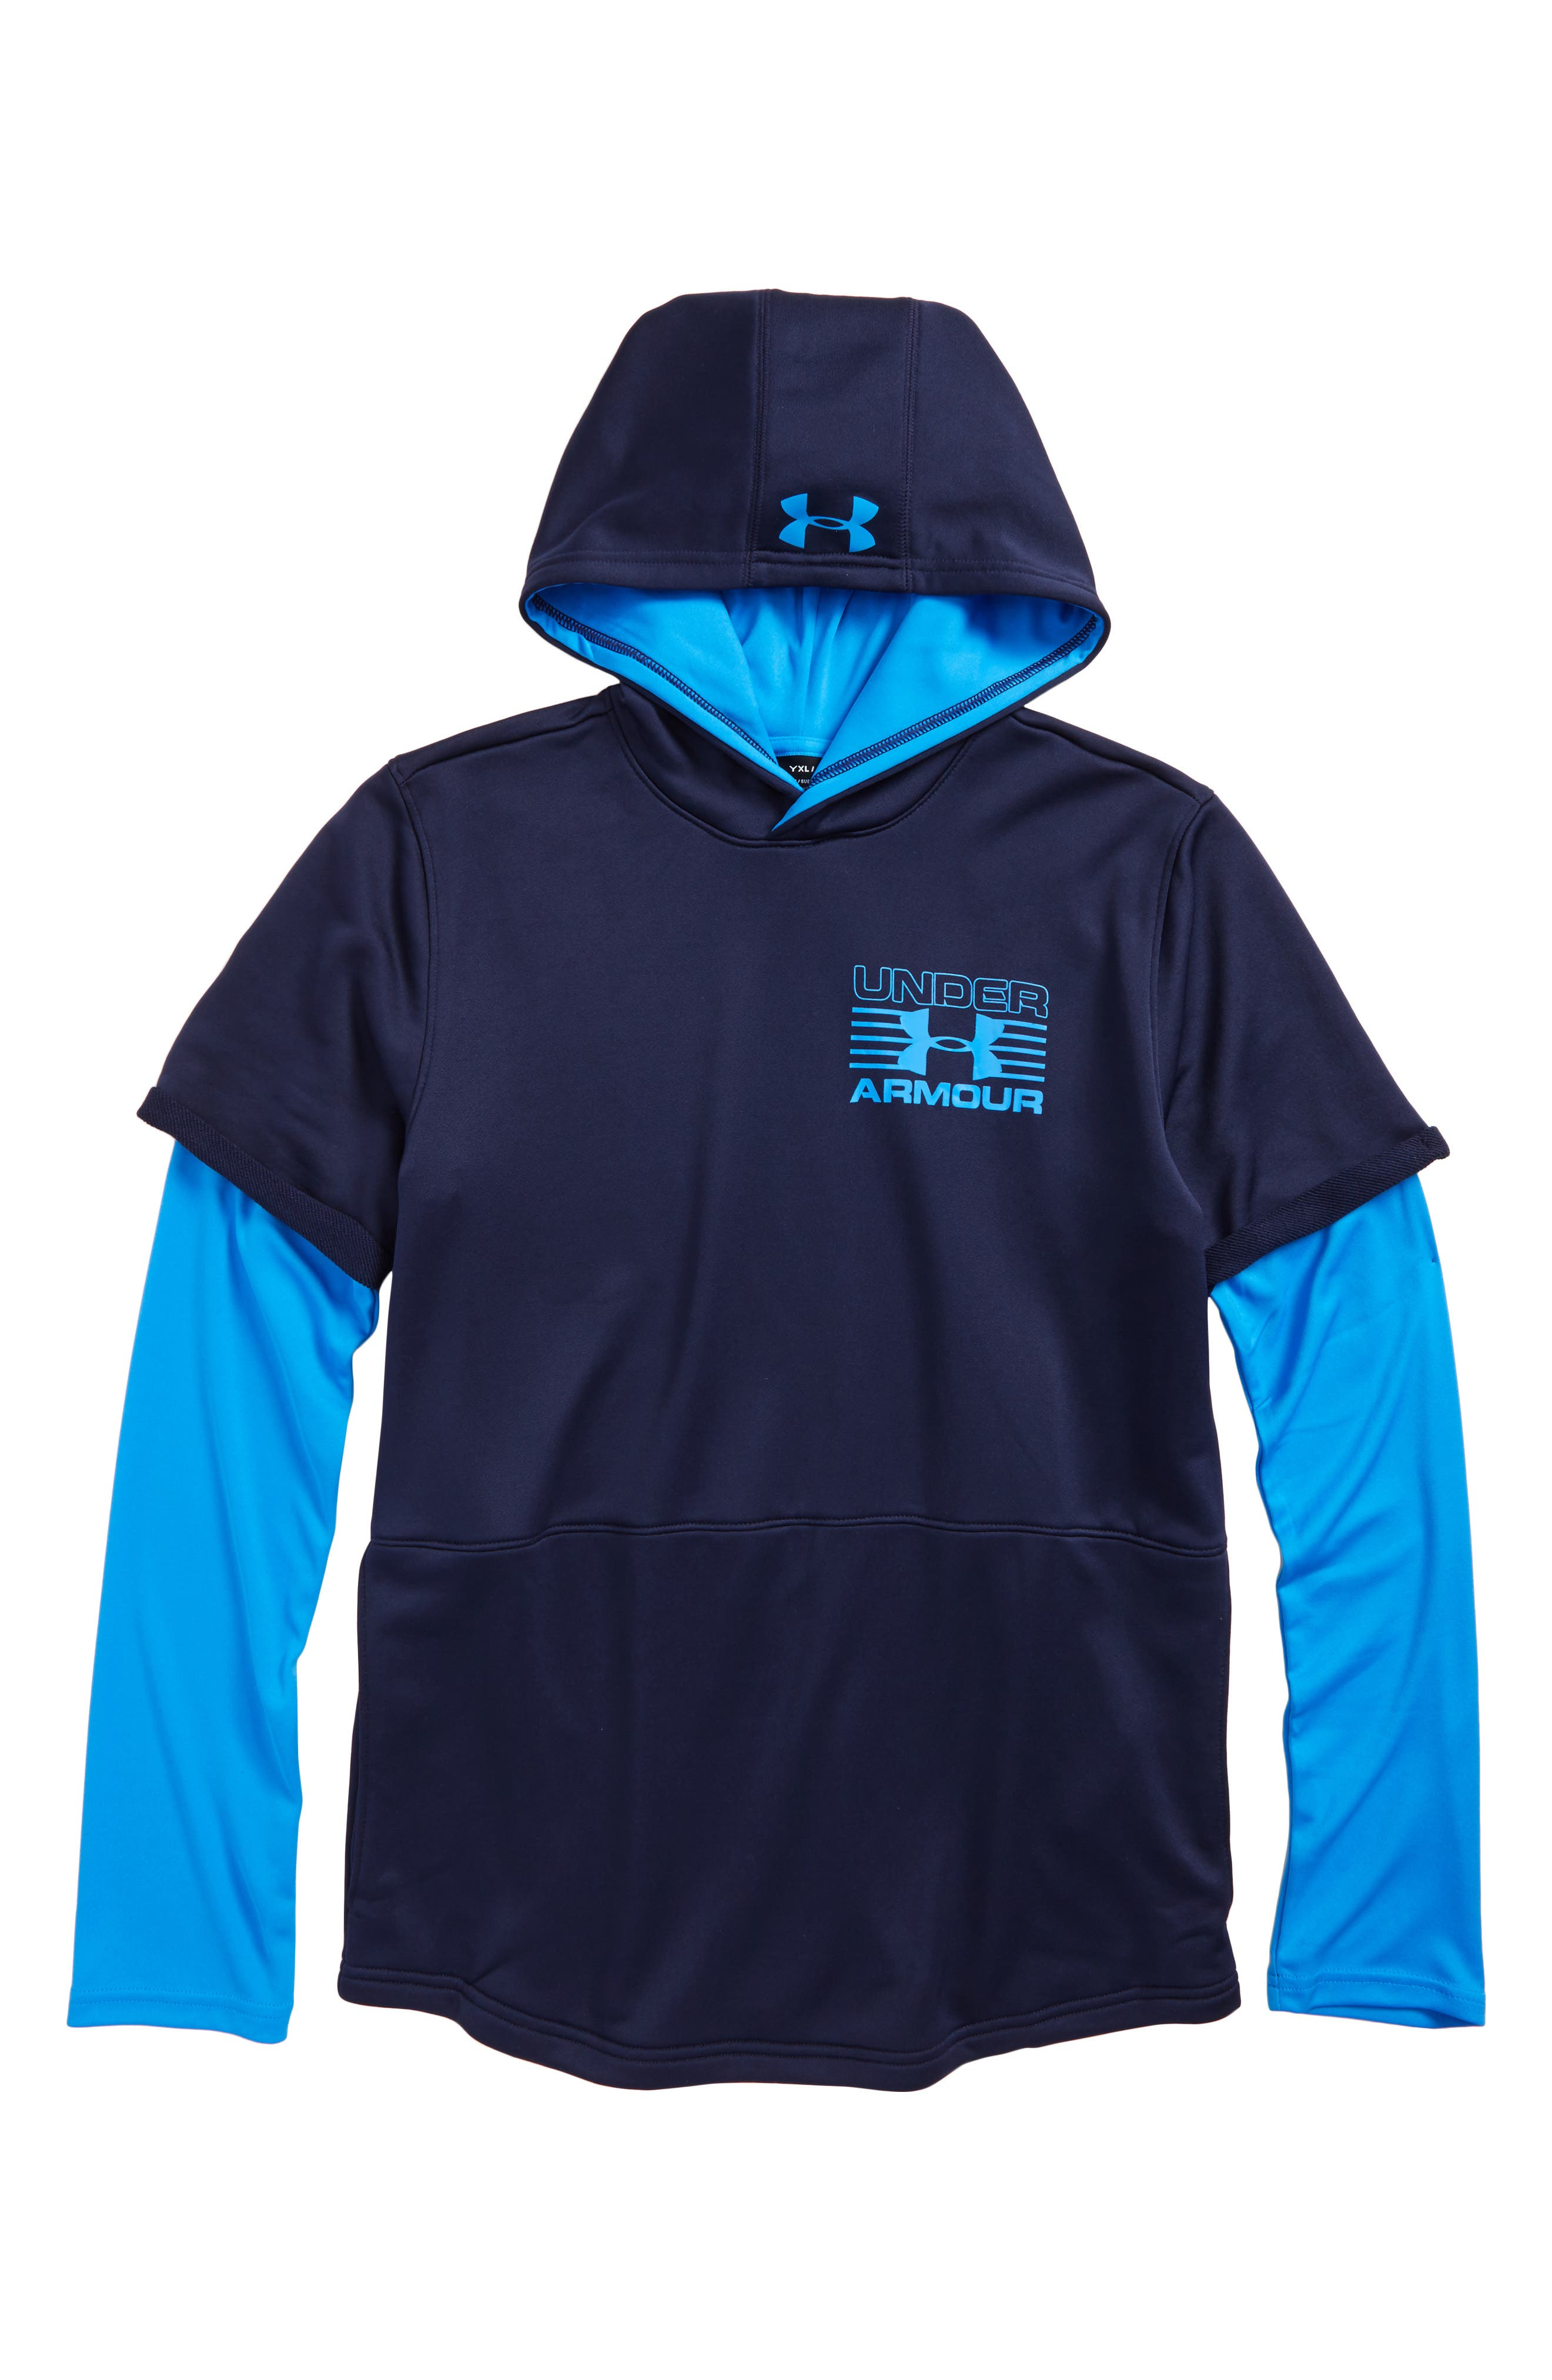 Main Image - Under Armour Train to Game Layered ColdGear® Hoodie (Little Boys & Big Boys)